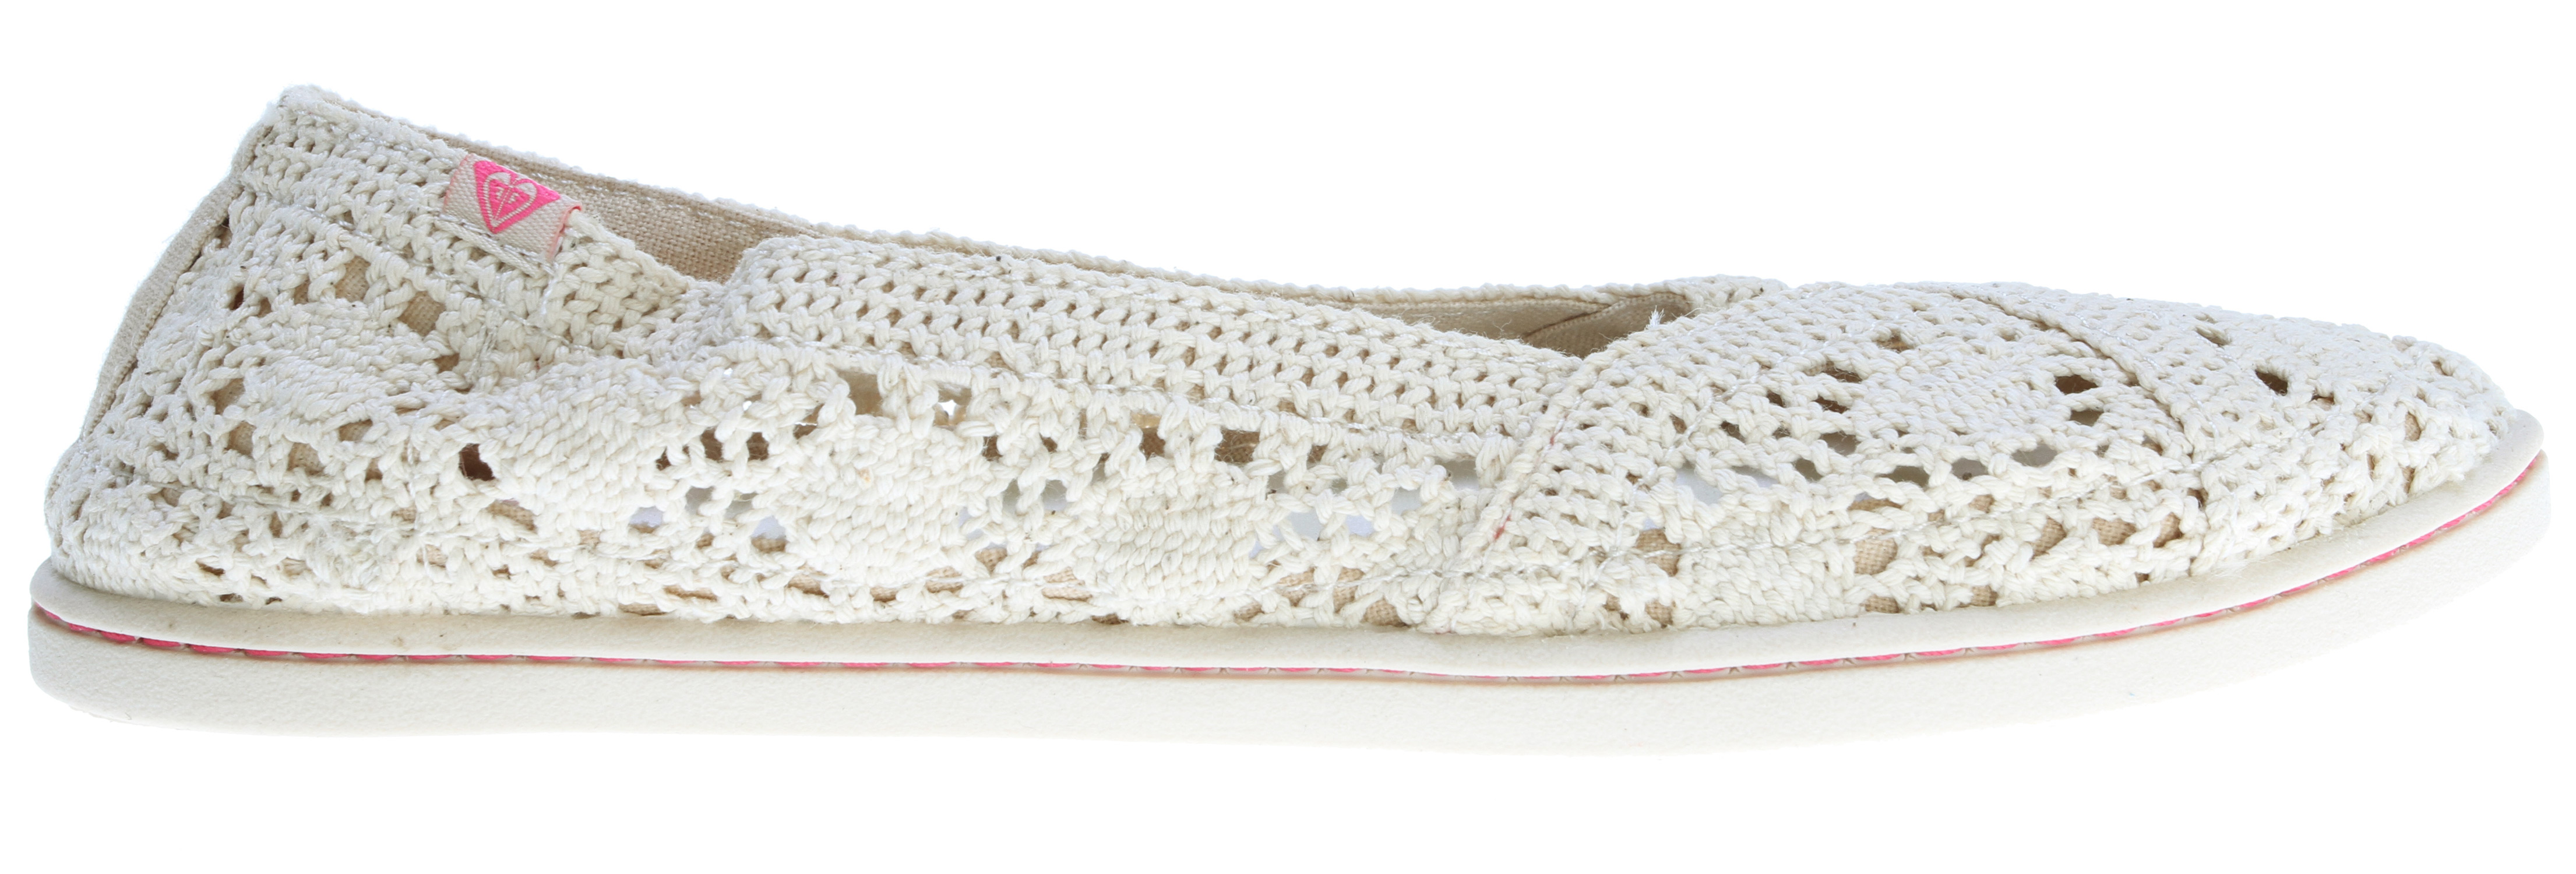 Surf Key Features of the Roxy Boardwalk Shoes: Crochet uppers Logo flag Canvas lining and logo printed sock Soft padded insole for comfort TPR injected outsole - $27.95